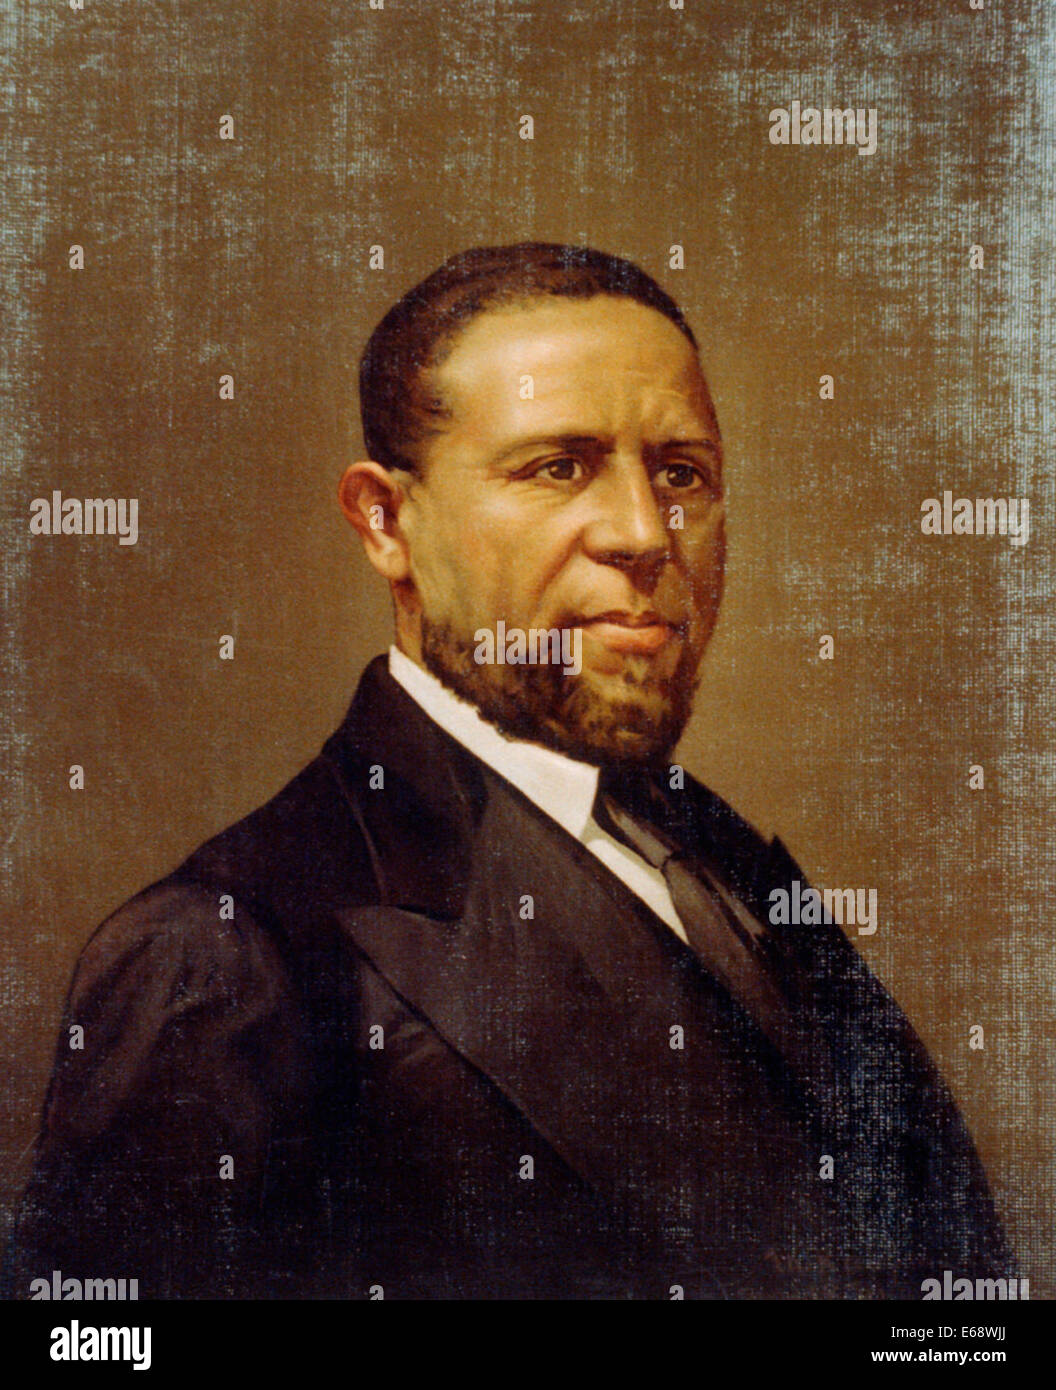 Hiram Rhodes Revels (September 27, 1827 – January 16, 1901) was a minister in the African Methodist Episcopal Church - Stock Image